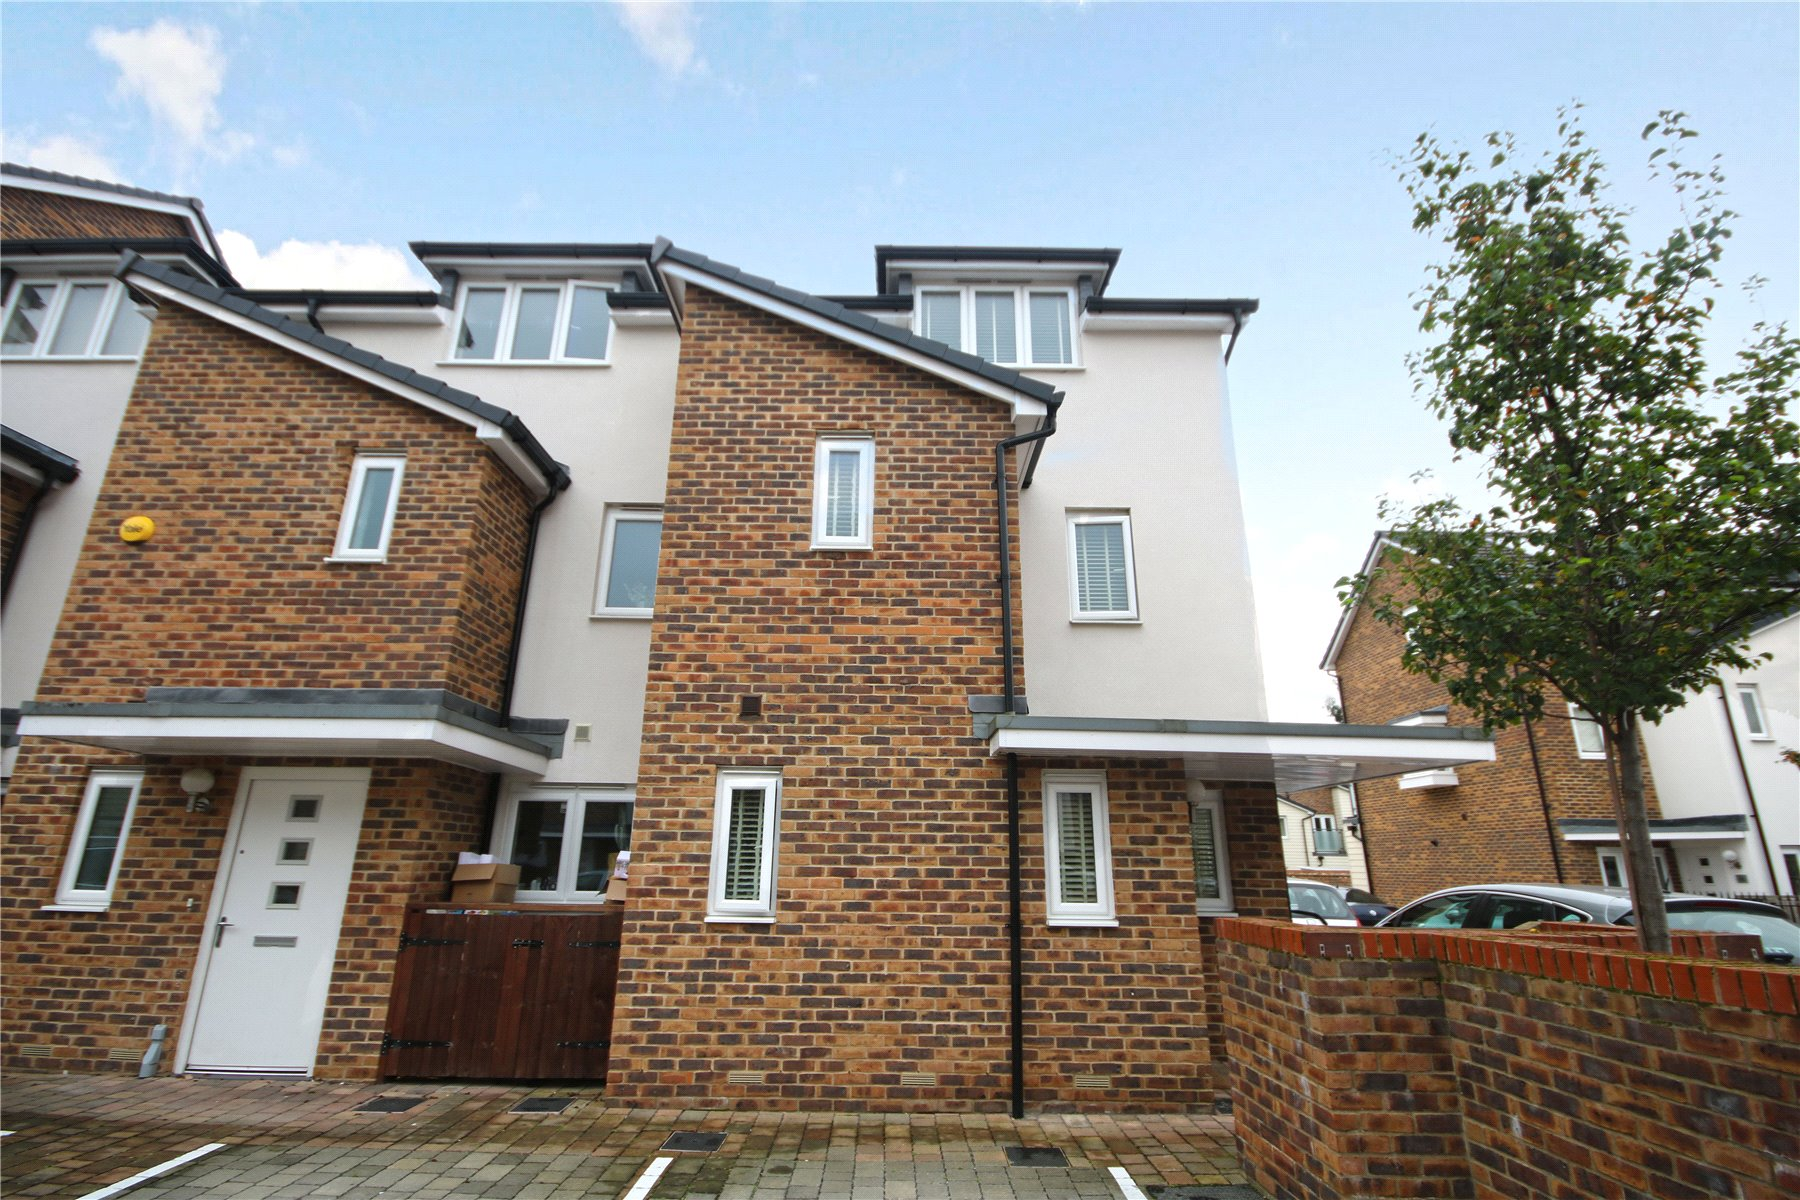 3 Bedrooms House for sale in Pyle Close, Addlestone, Surrey, KT15